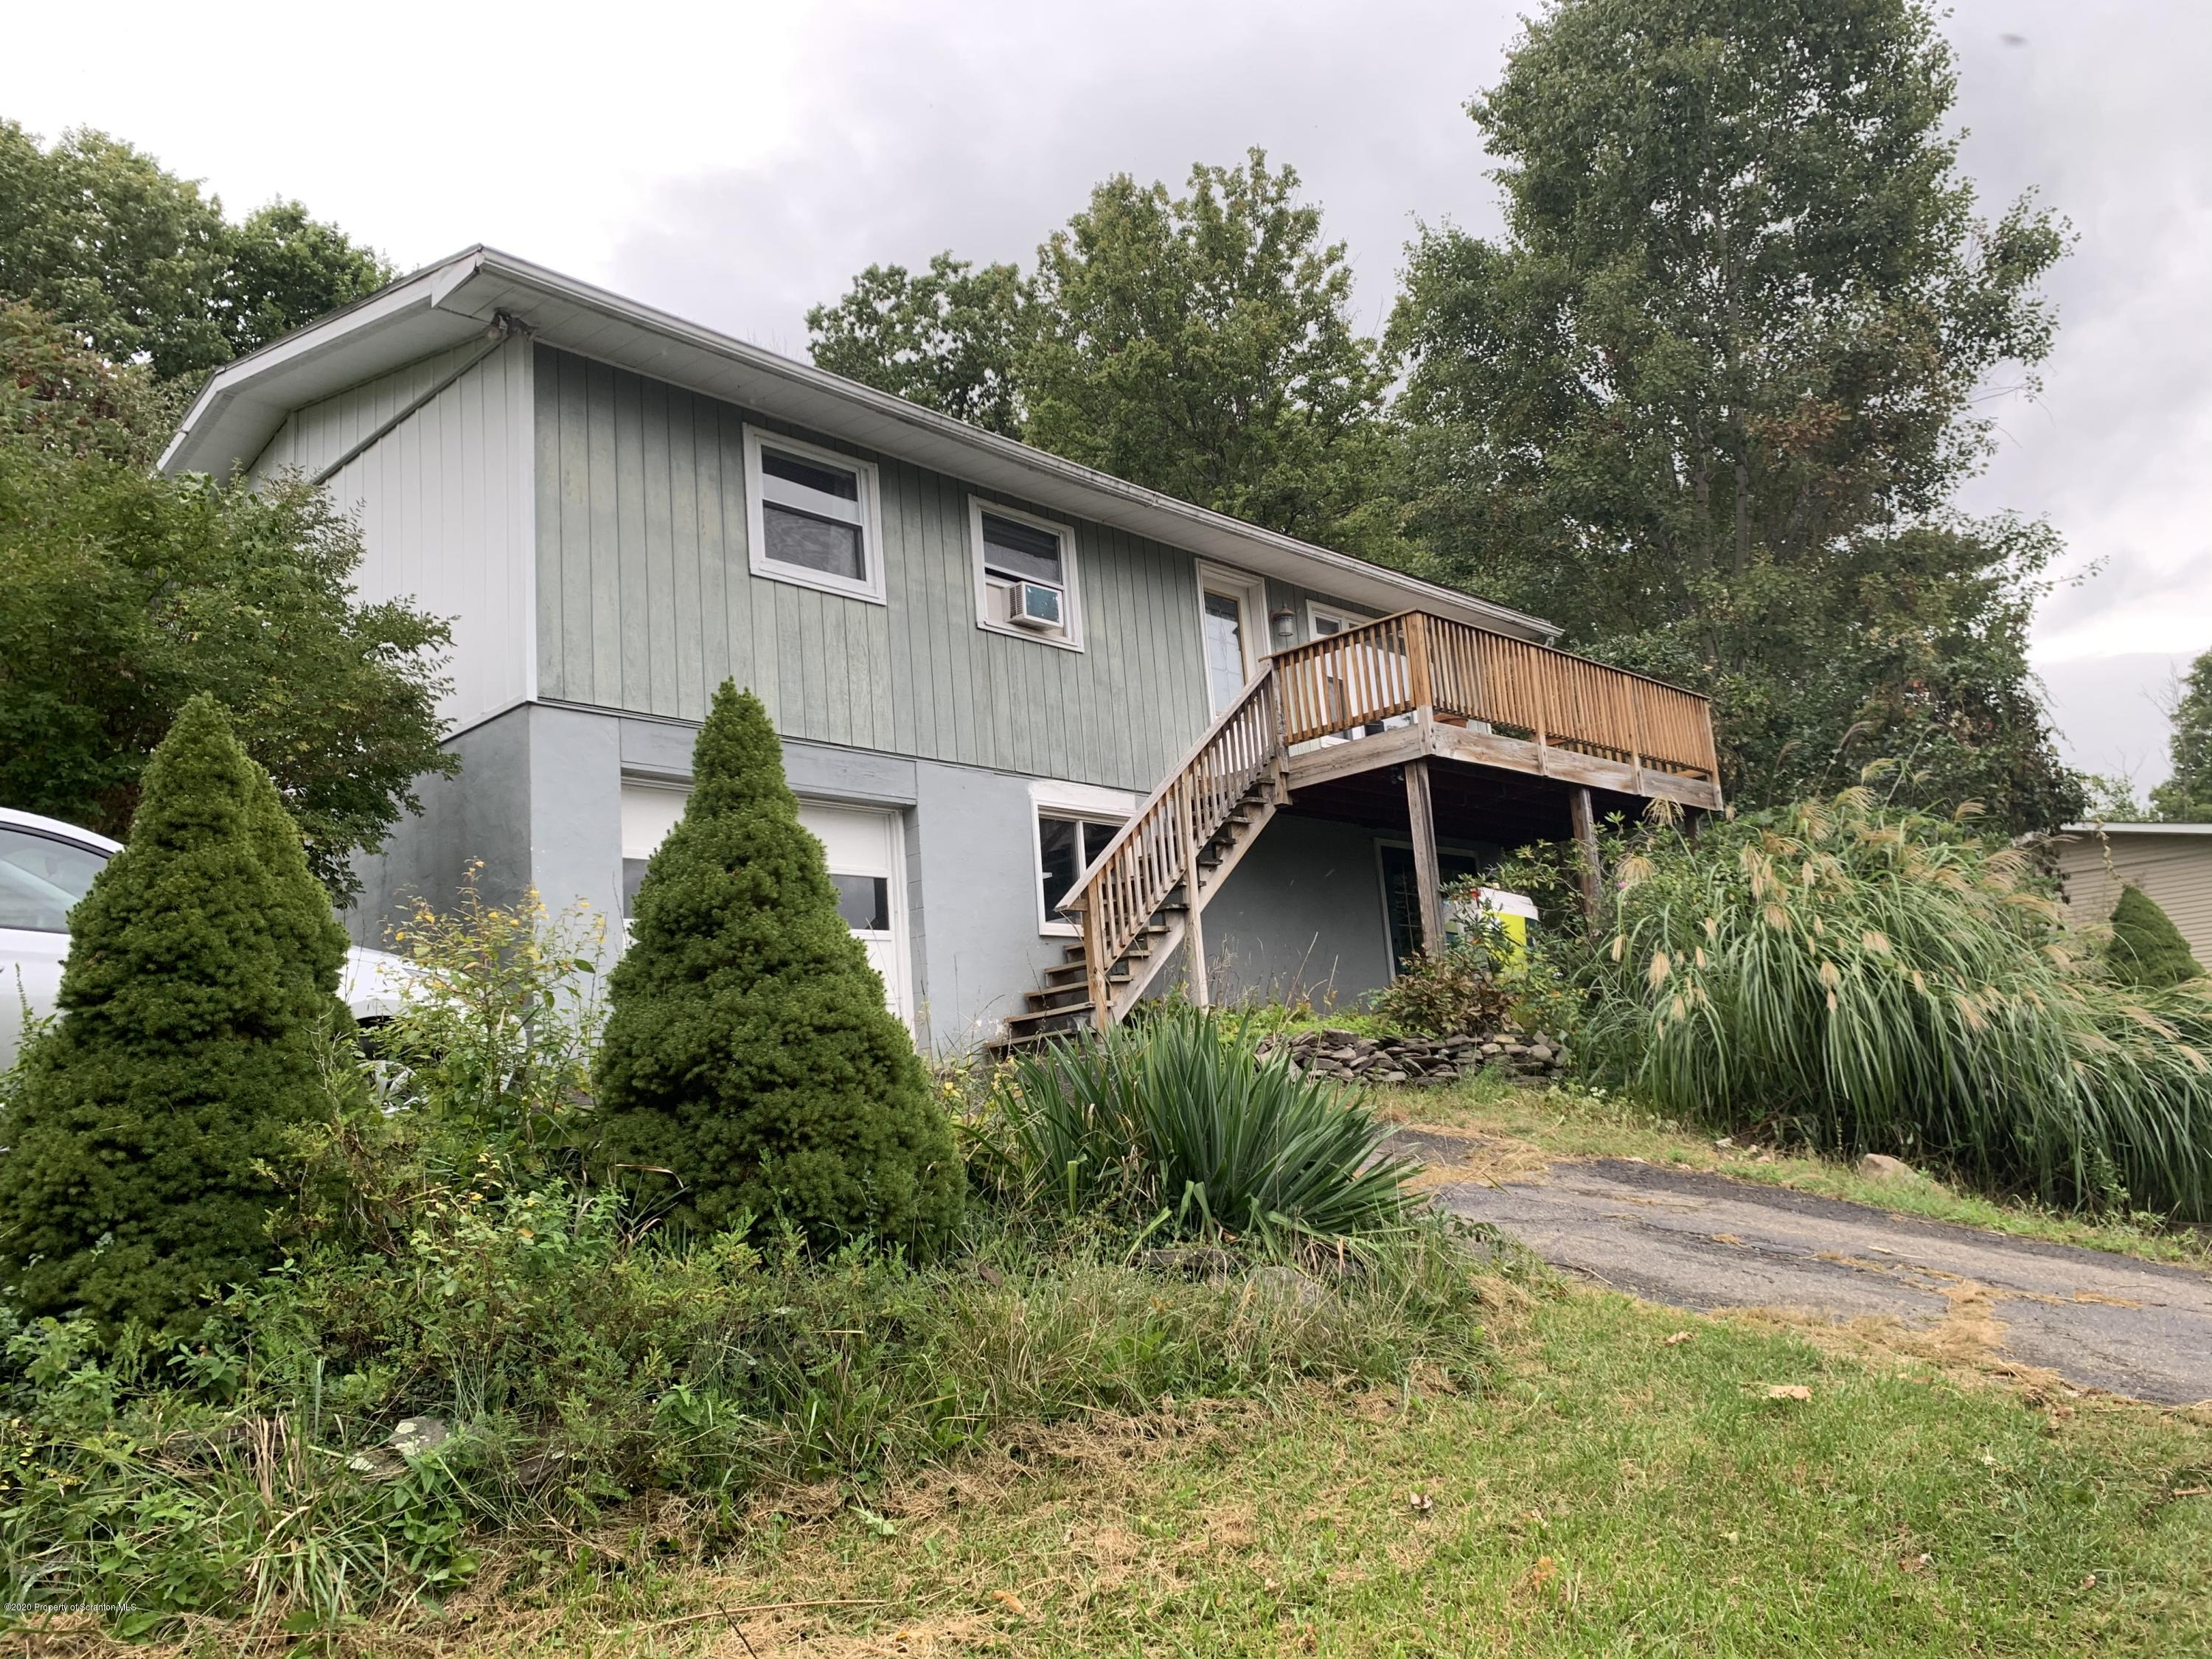 13 Lake View Dr, Tunkhannock, Pennsylvania 18657, 2 Bedrooms Bedrooms, 5 Rooms Rooms,1 BathroomBathrooms,Single Family,For Sale,Lake View,20-3799